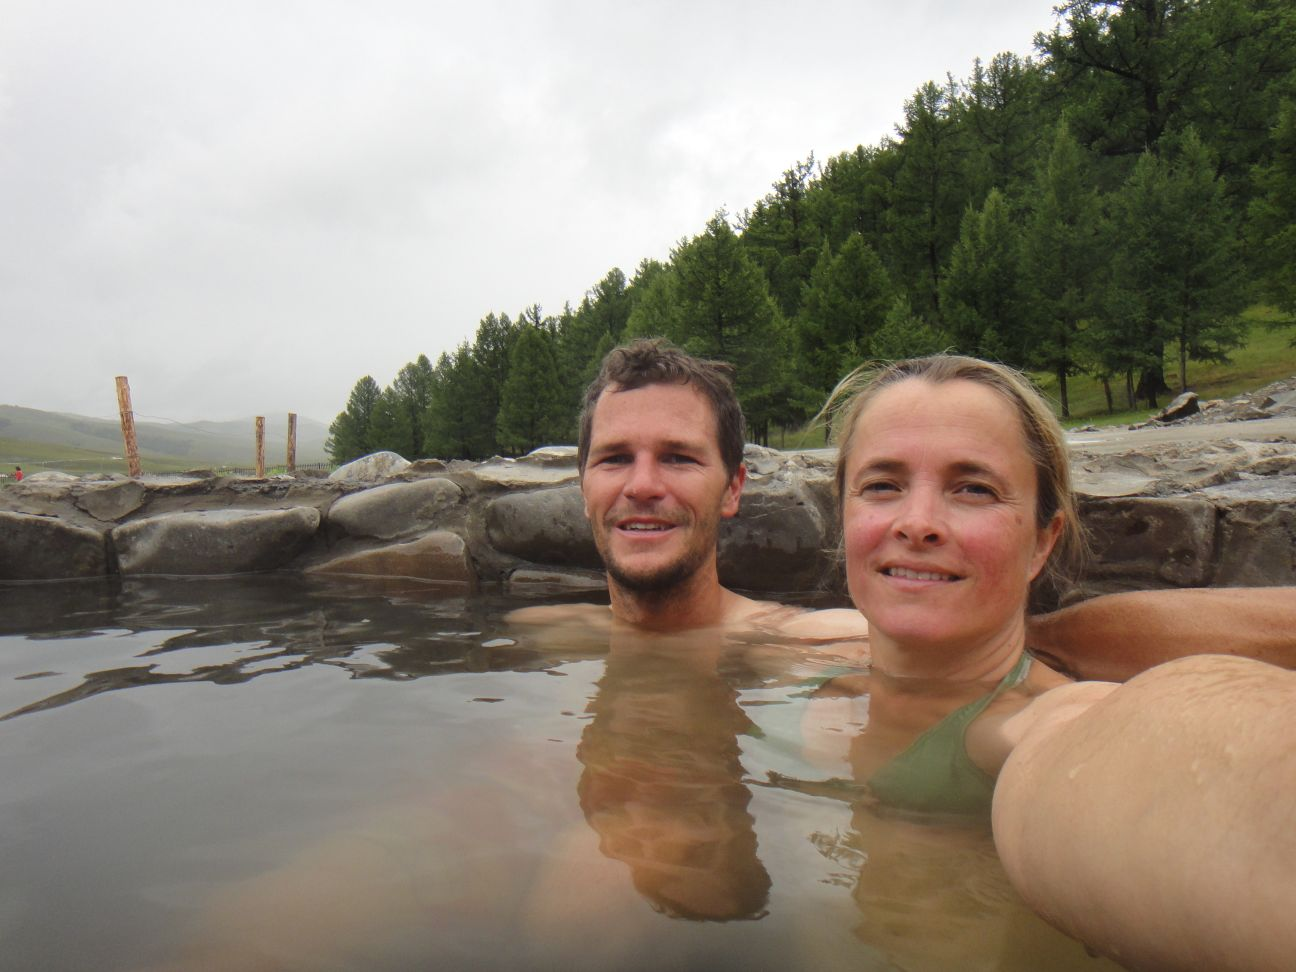 well-deserved hot spring soak!